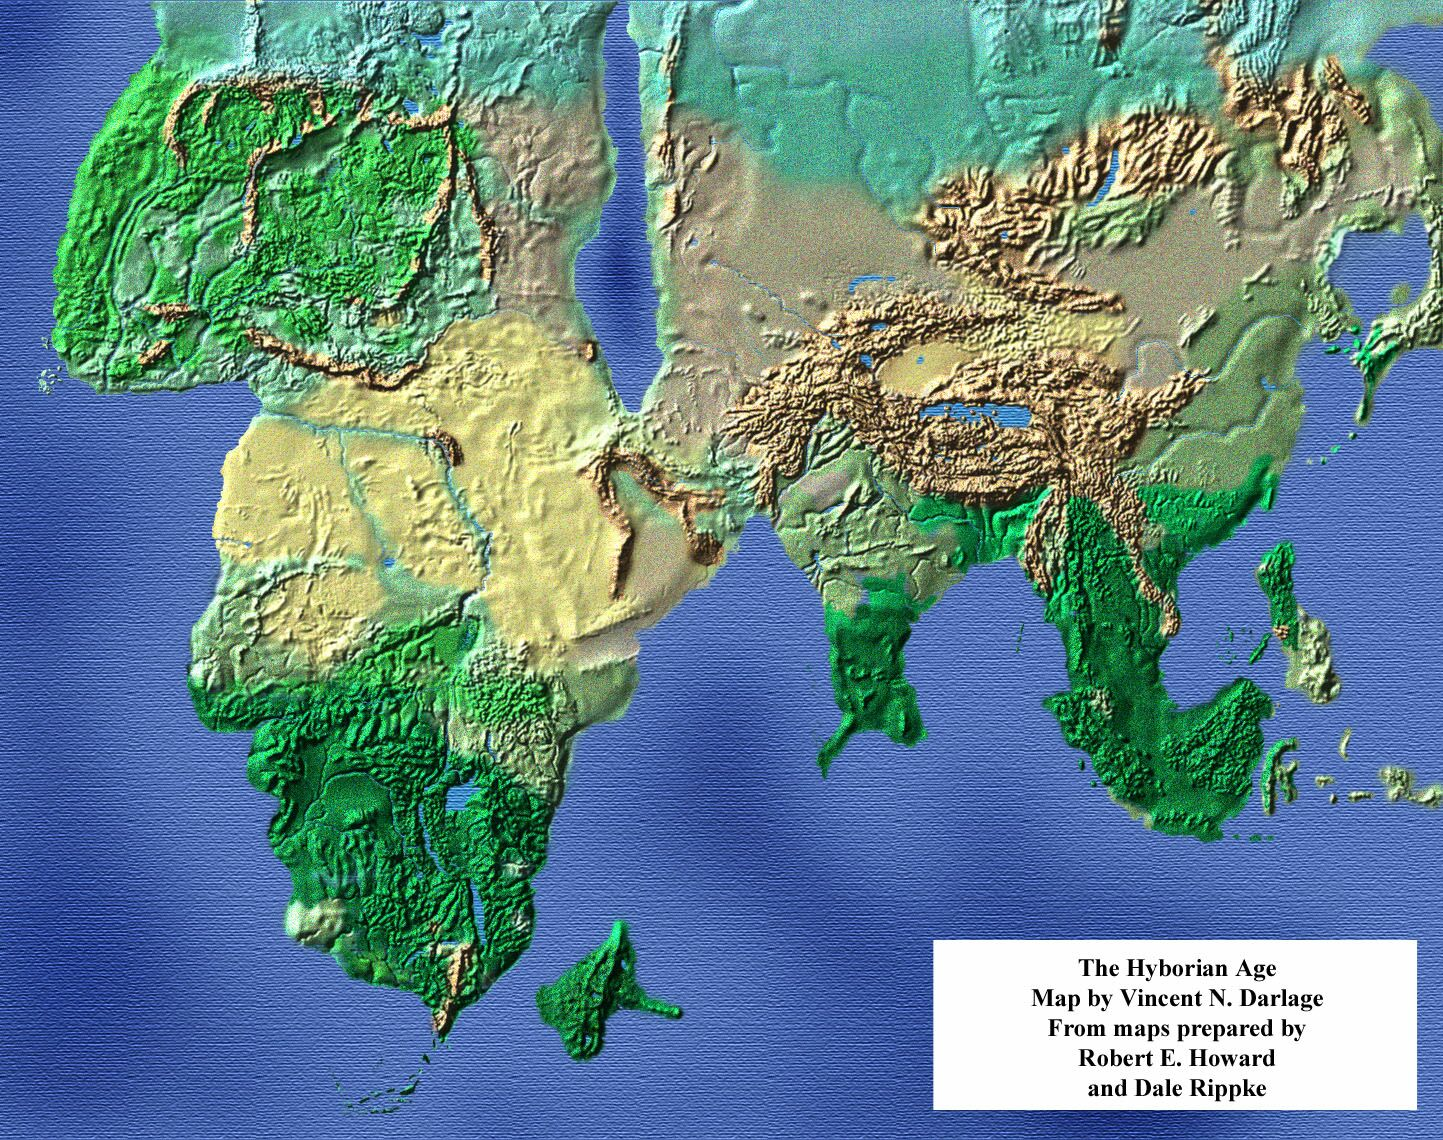 Maps of the Hyborian Age